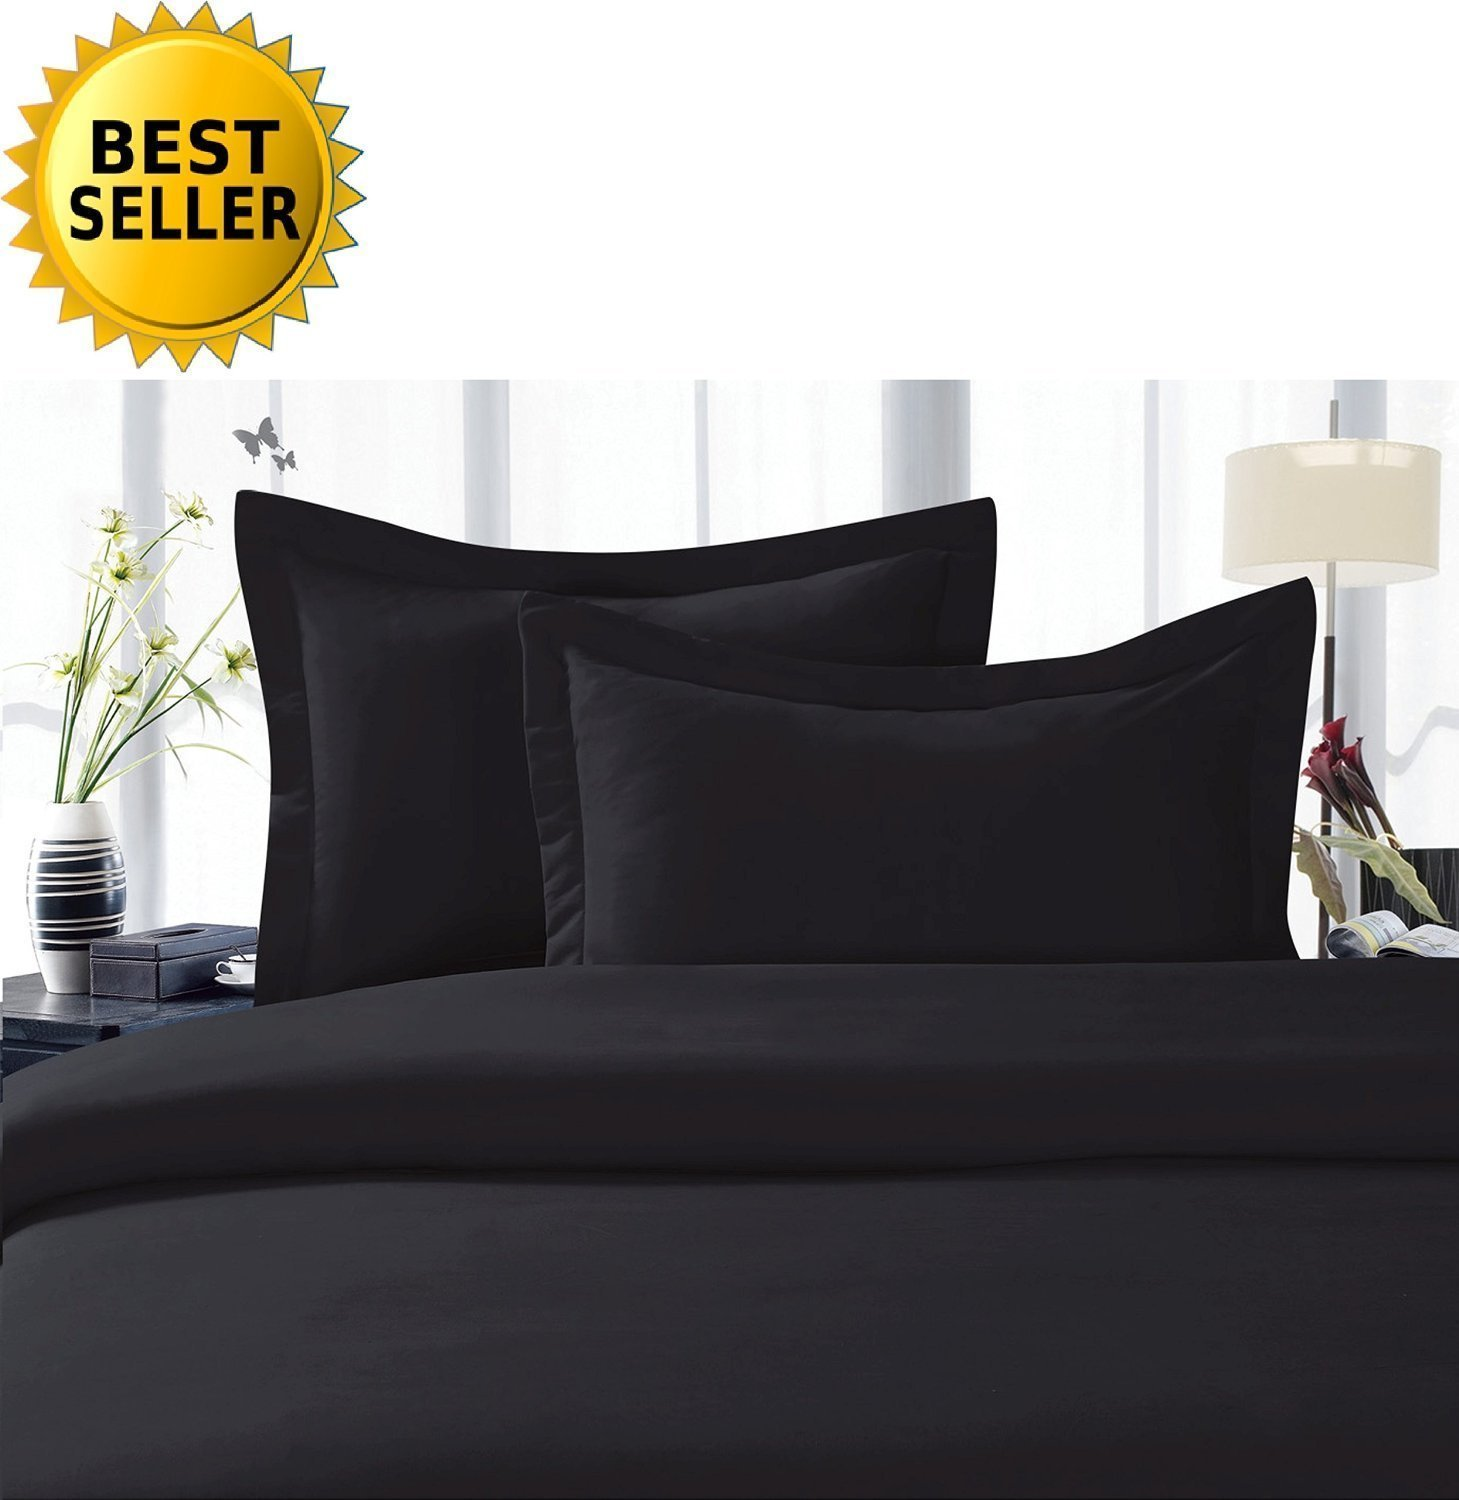 Elegant Comfort ® 1500 Thread Count Egyptian Quality Super Soft Wrinkle Free 4 pc Sheet Set, Deep Pocket - All size and Colors ★★ Great Deal ★★ , Queen Black